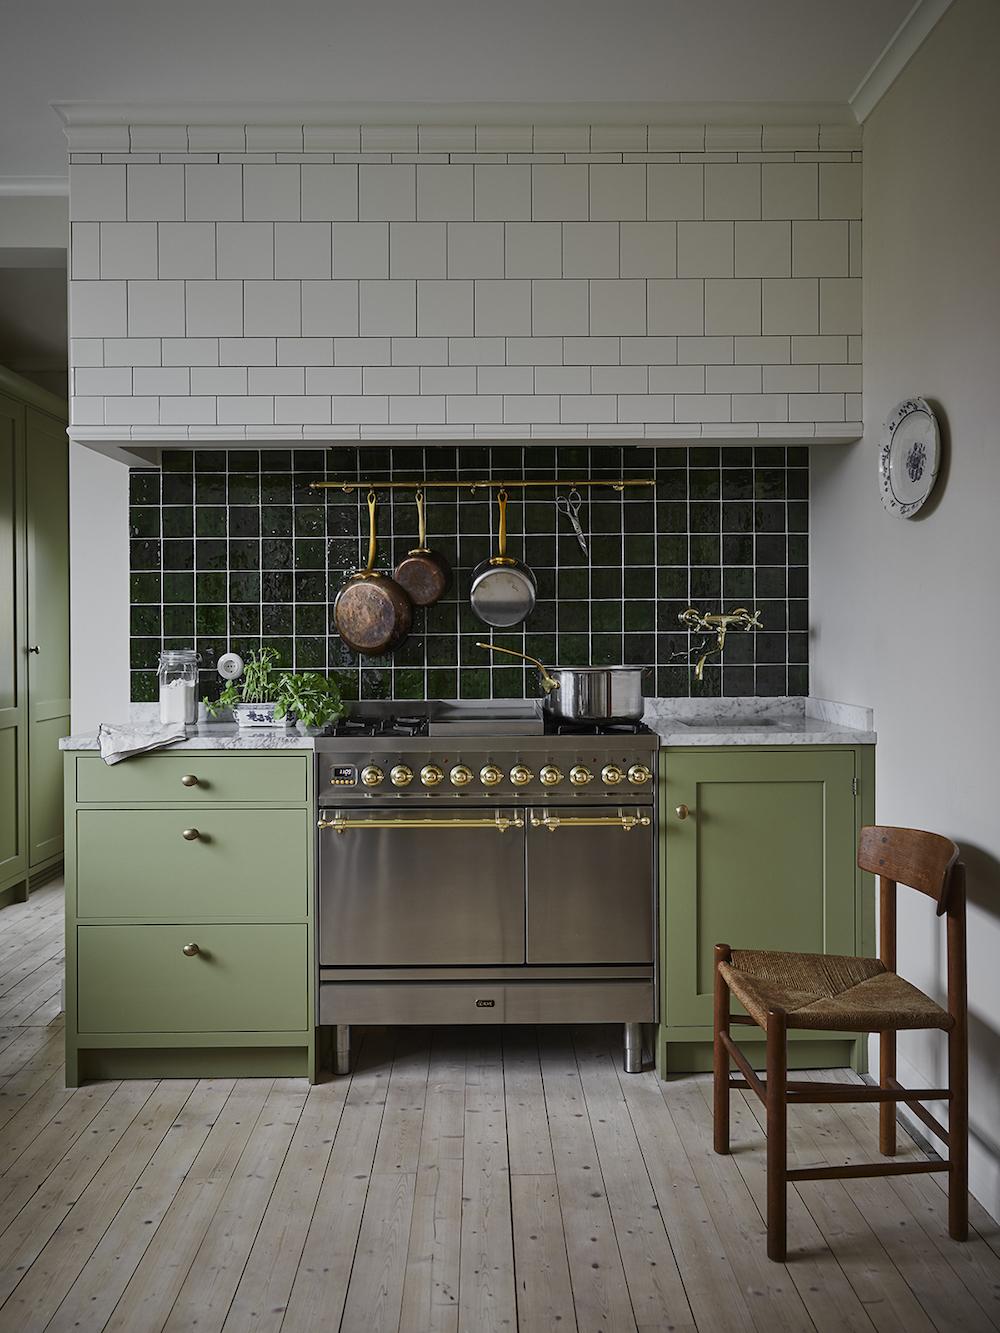 Beautiful Traditional Country Chic Kitchens Nordicdesign 023 Nordic Design